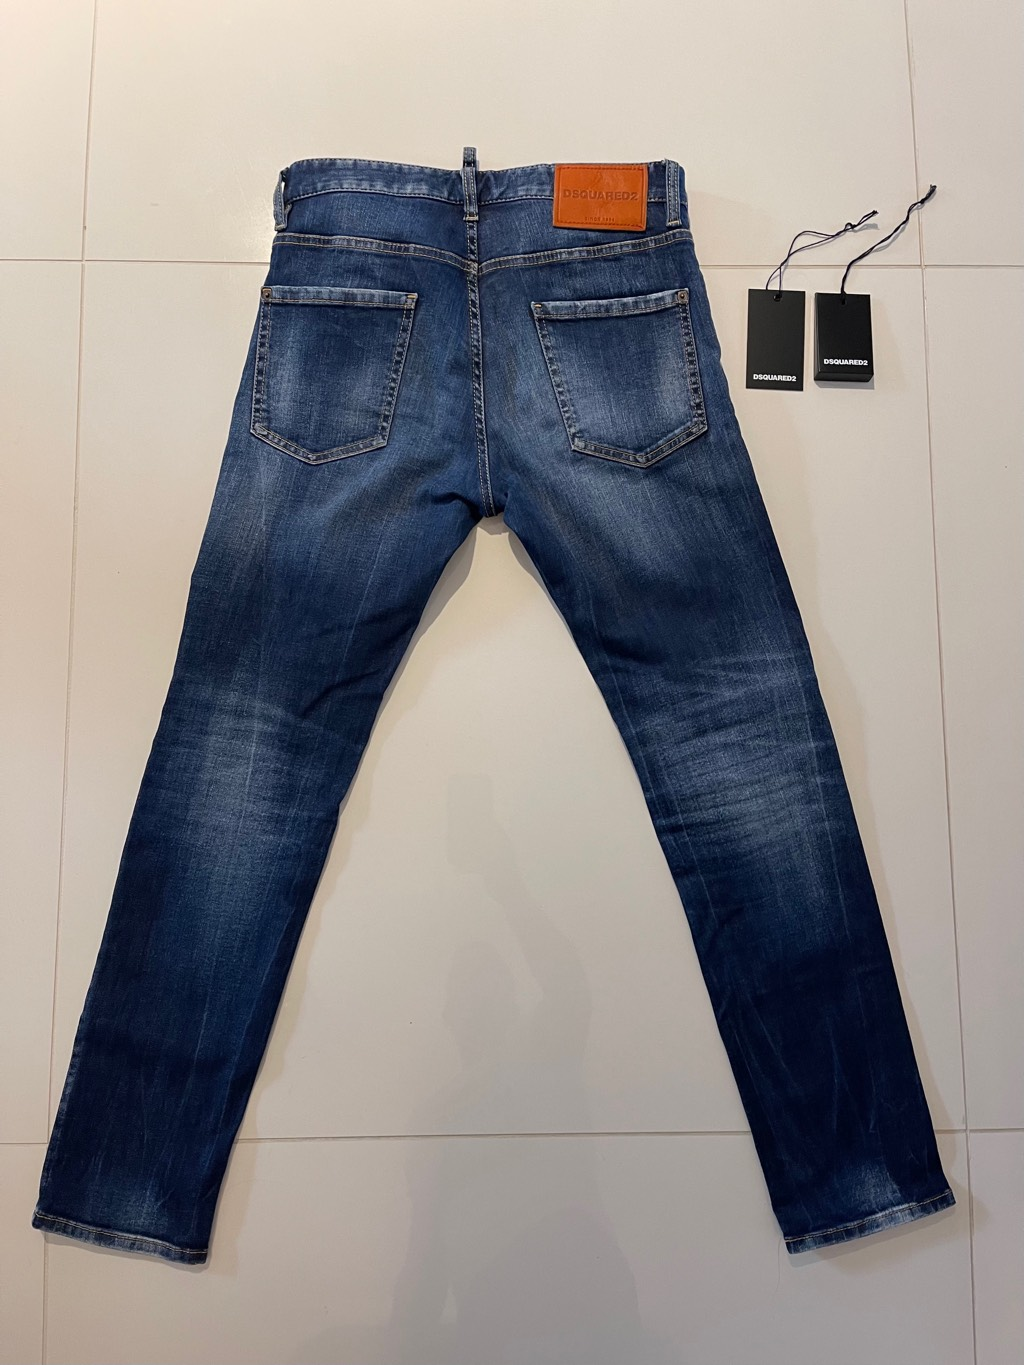 DSQUARED2 Cool Guy jeans, sz.44Dsquared24